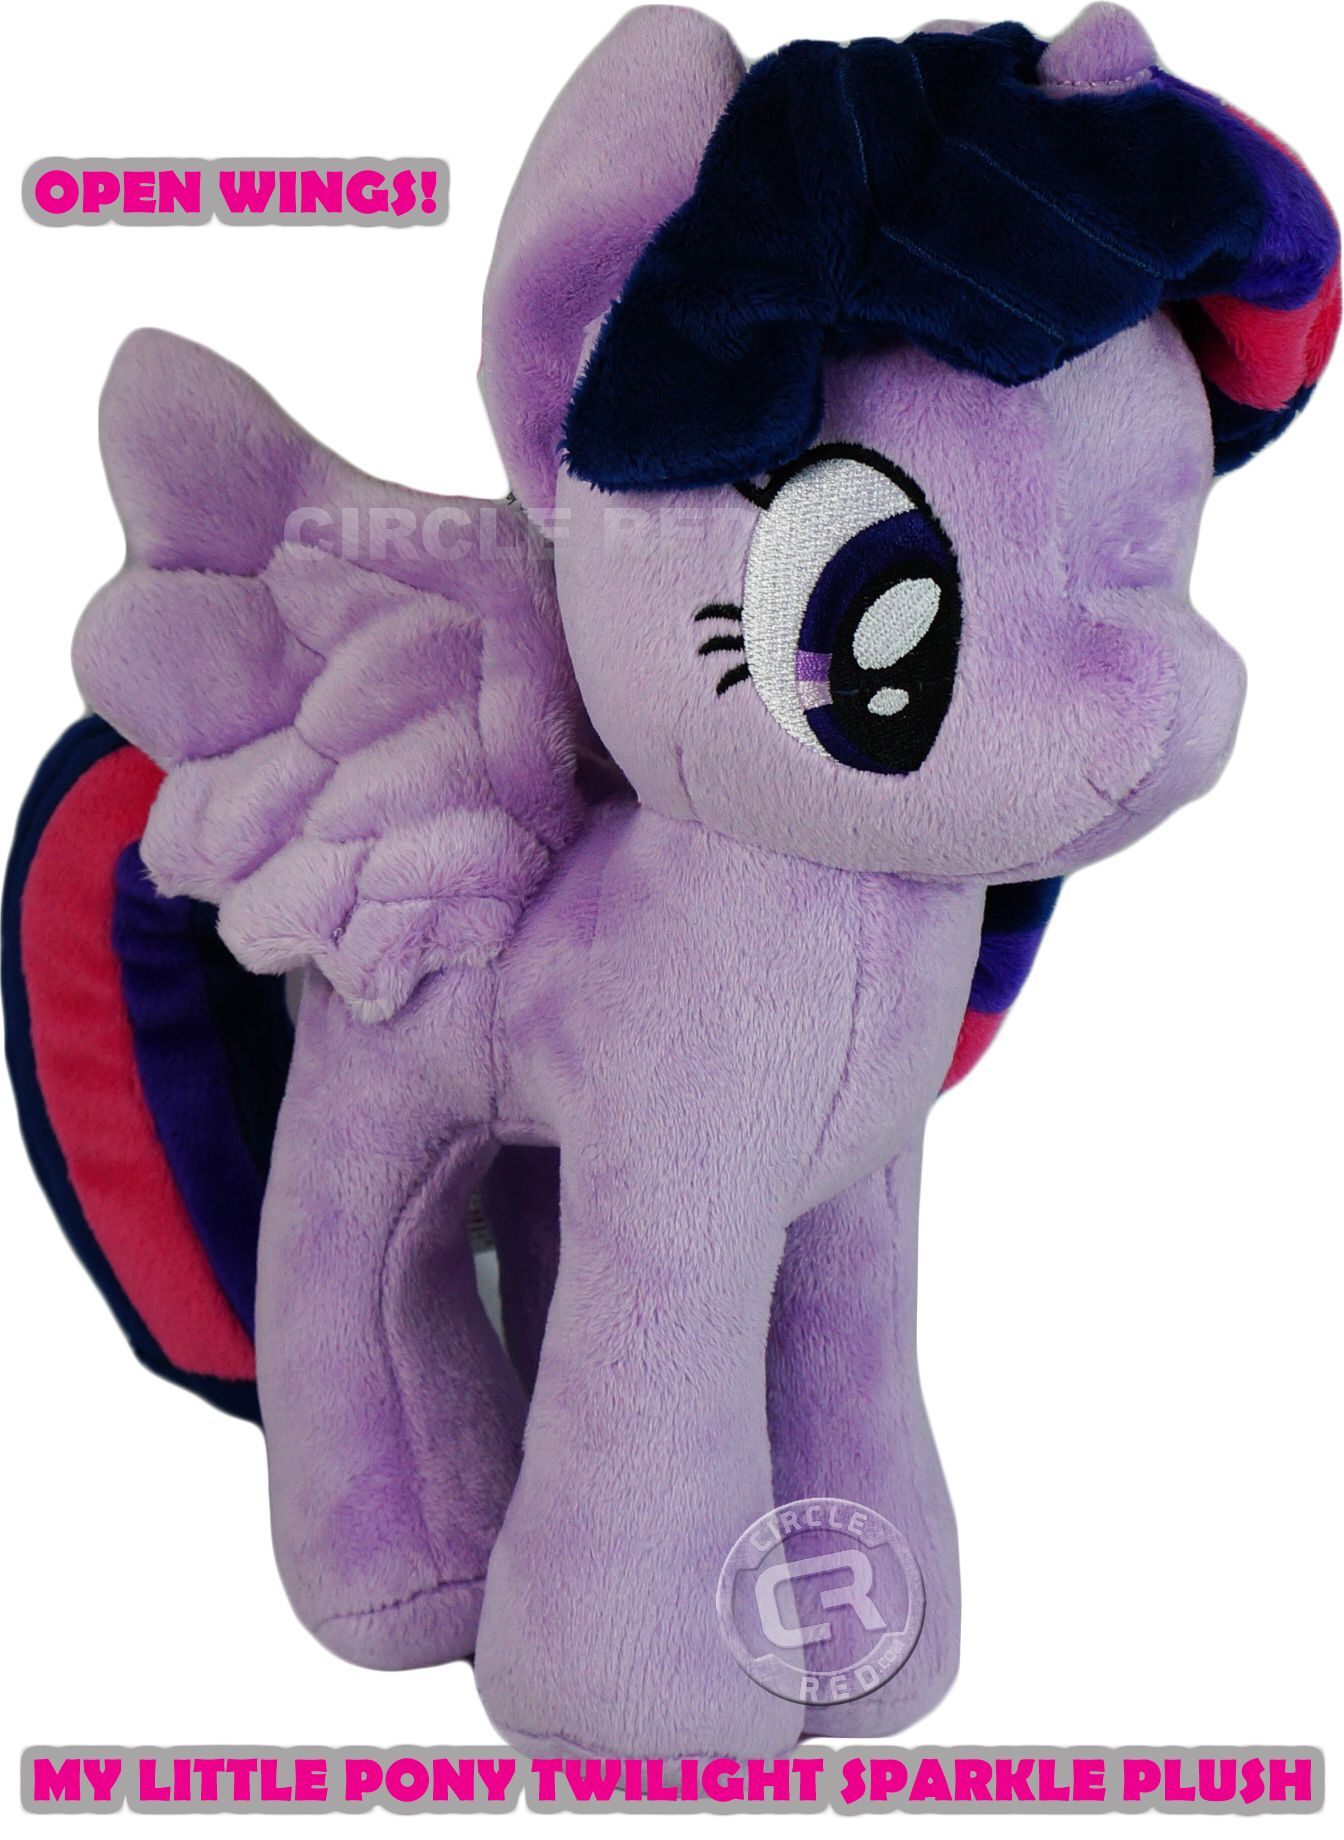 My Little Pony Princess Twilight Sparkle Open Wings 11/'/' Plush 4th Dimension